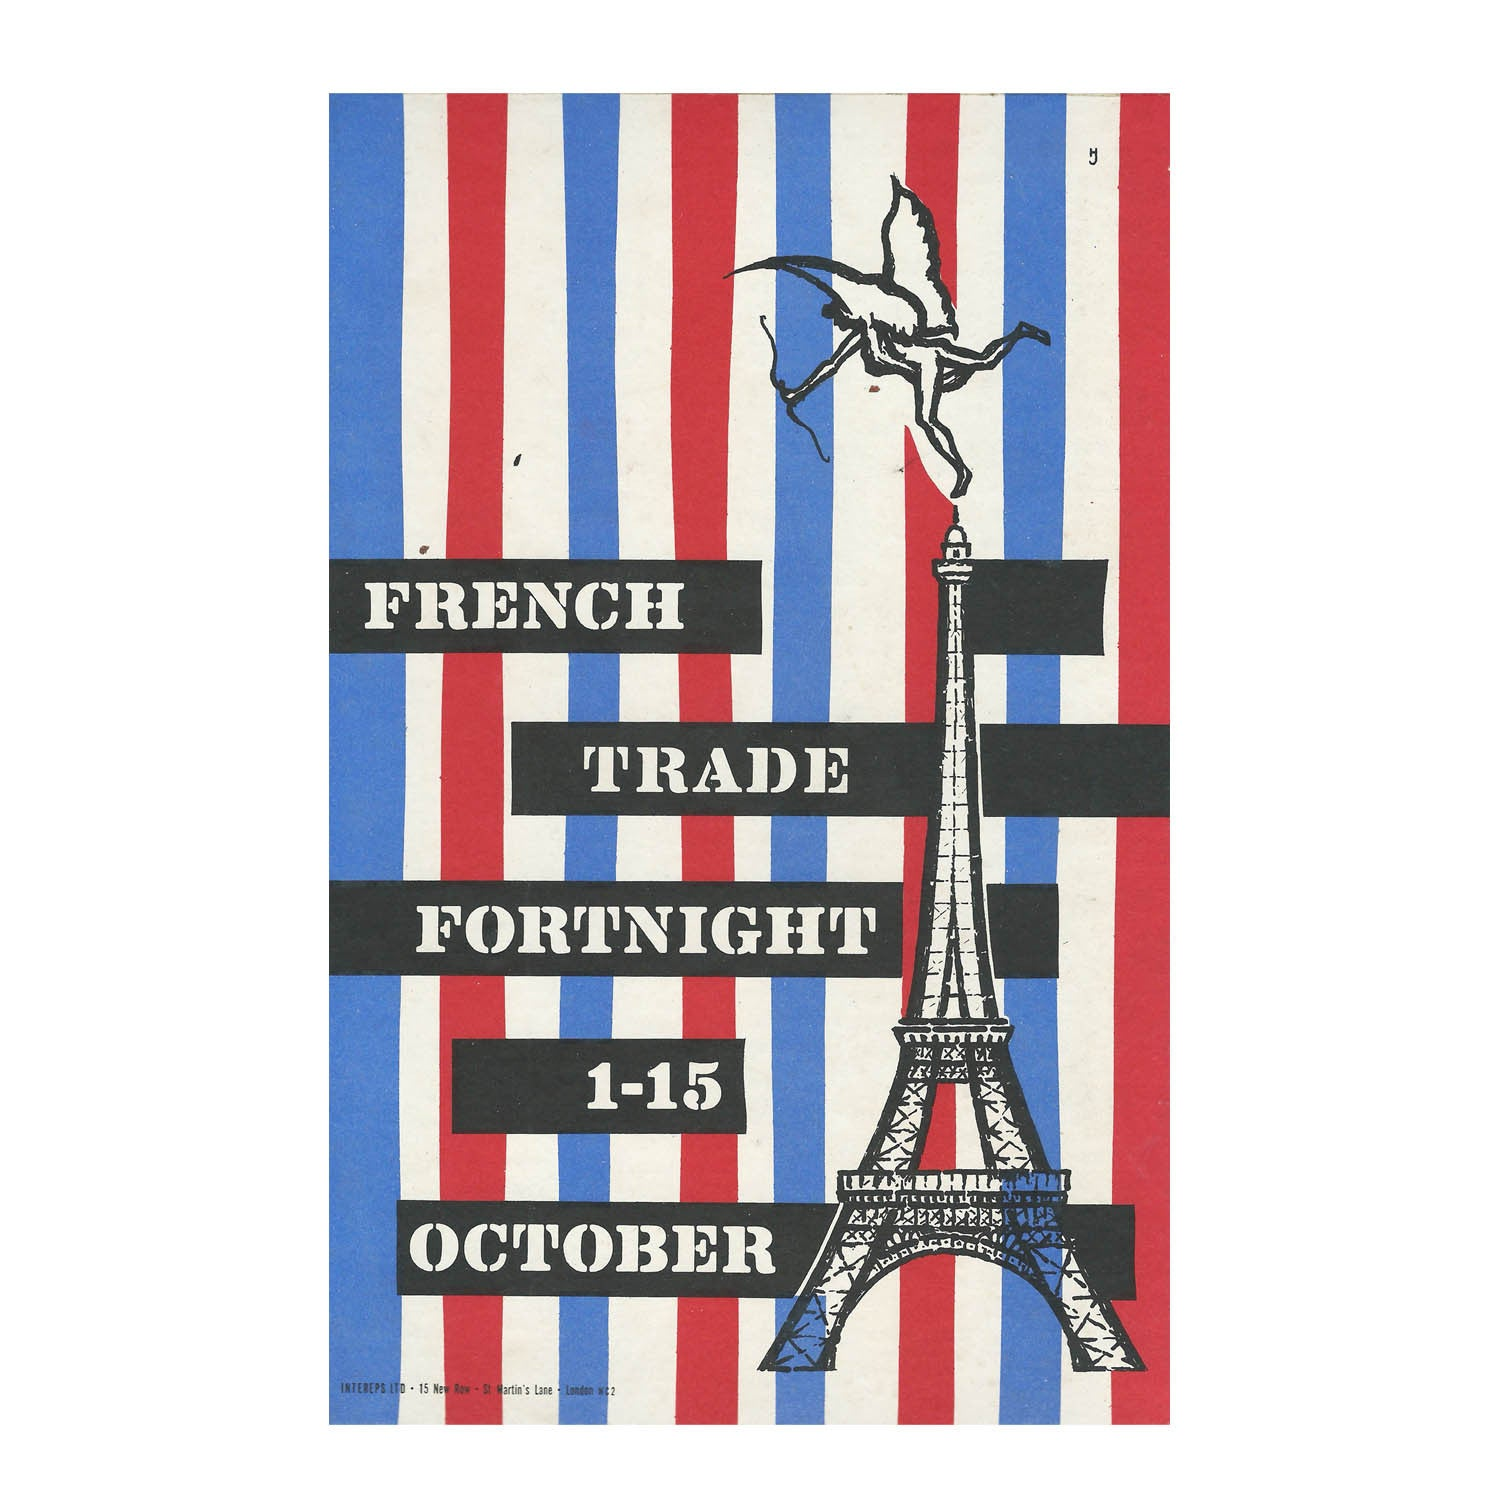 French Trade Fortnight poster. 1950s